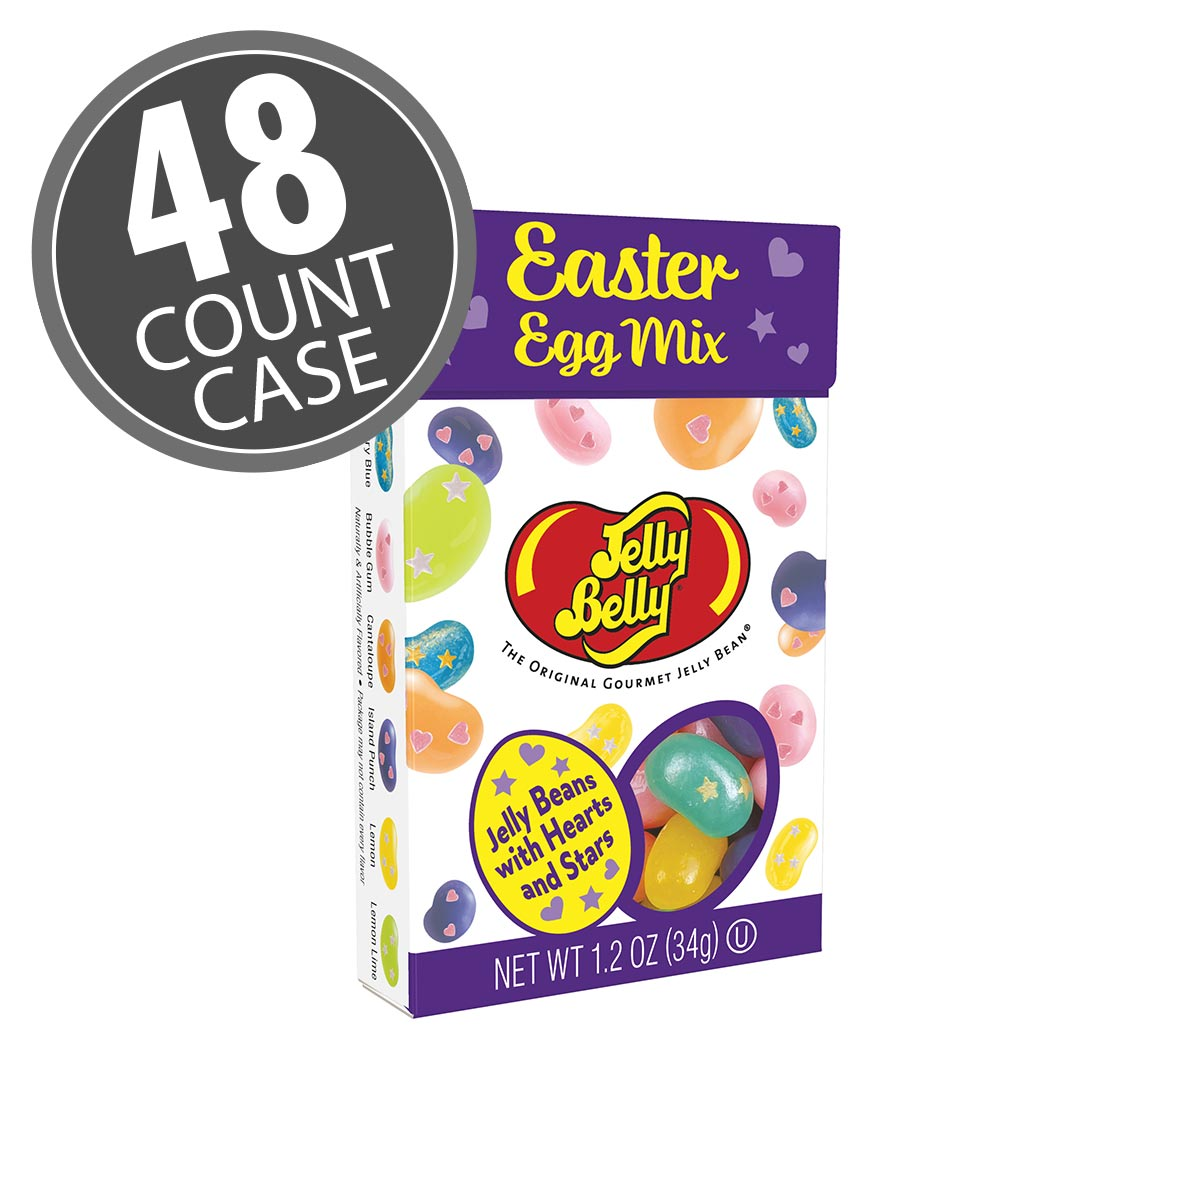 Jelly Belly Easter Egg Flip Top Box, 1.2 oz - 48 Count Case